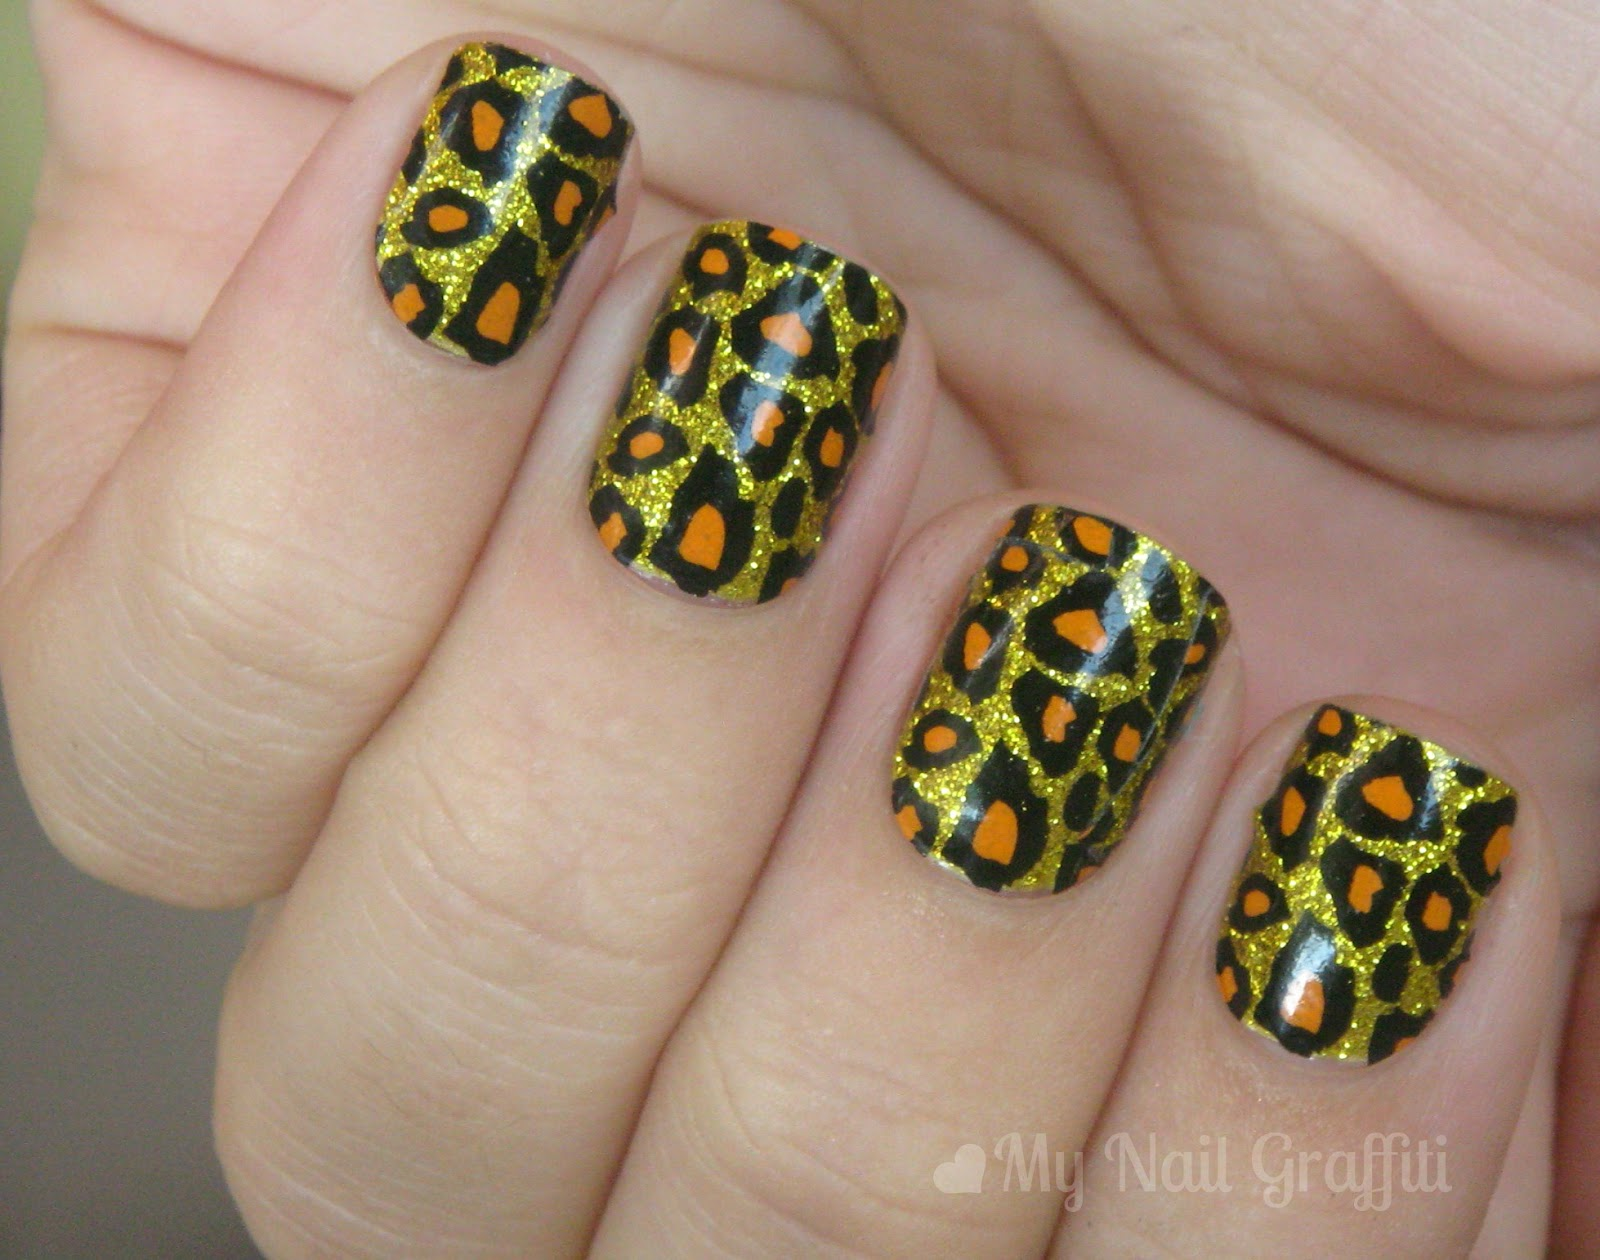 The Fascinating Leopard print fake nail designs Photograph